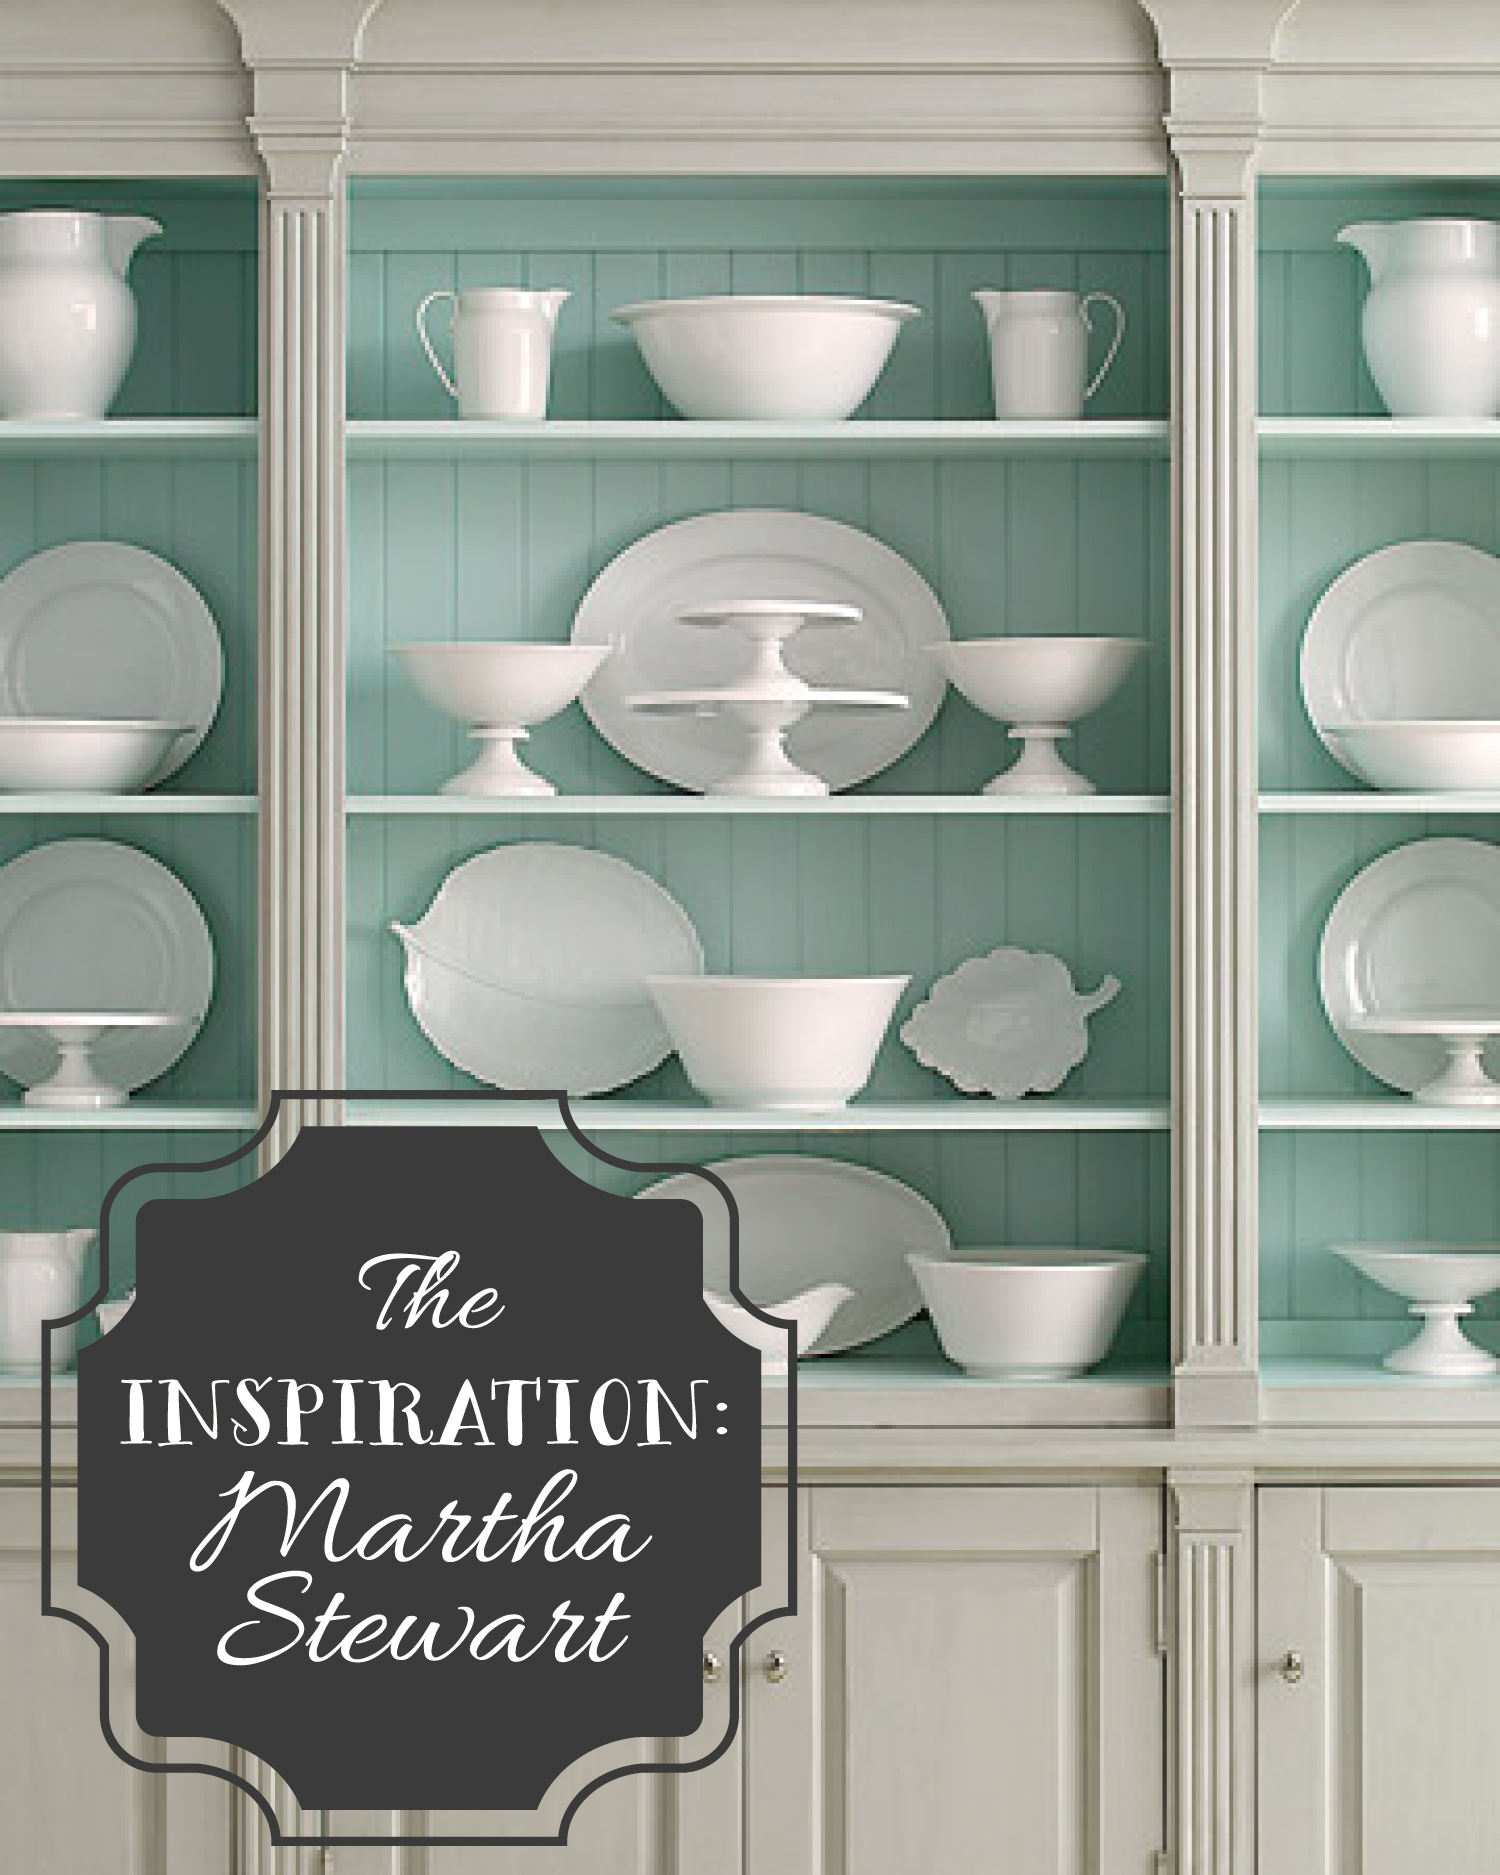 Perfect Decor Dishes Can Be Expensive, But There Is An Inexpensive And Easy DIY  Solution Which Includes (glossy) White Spray Paint And Some Thrift Store  (or Garage ...